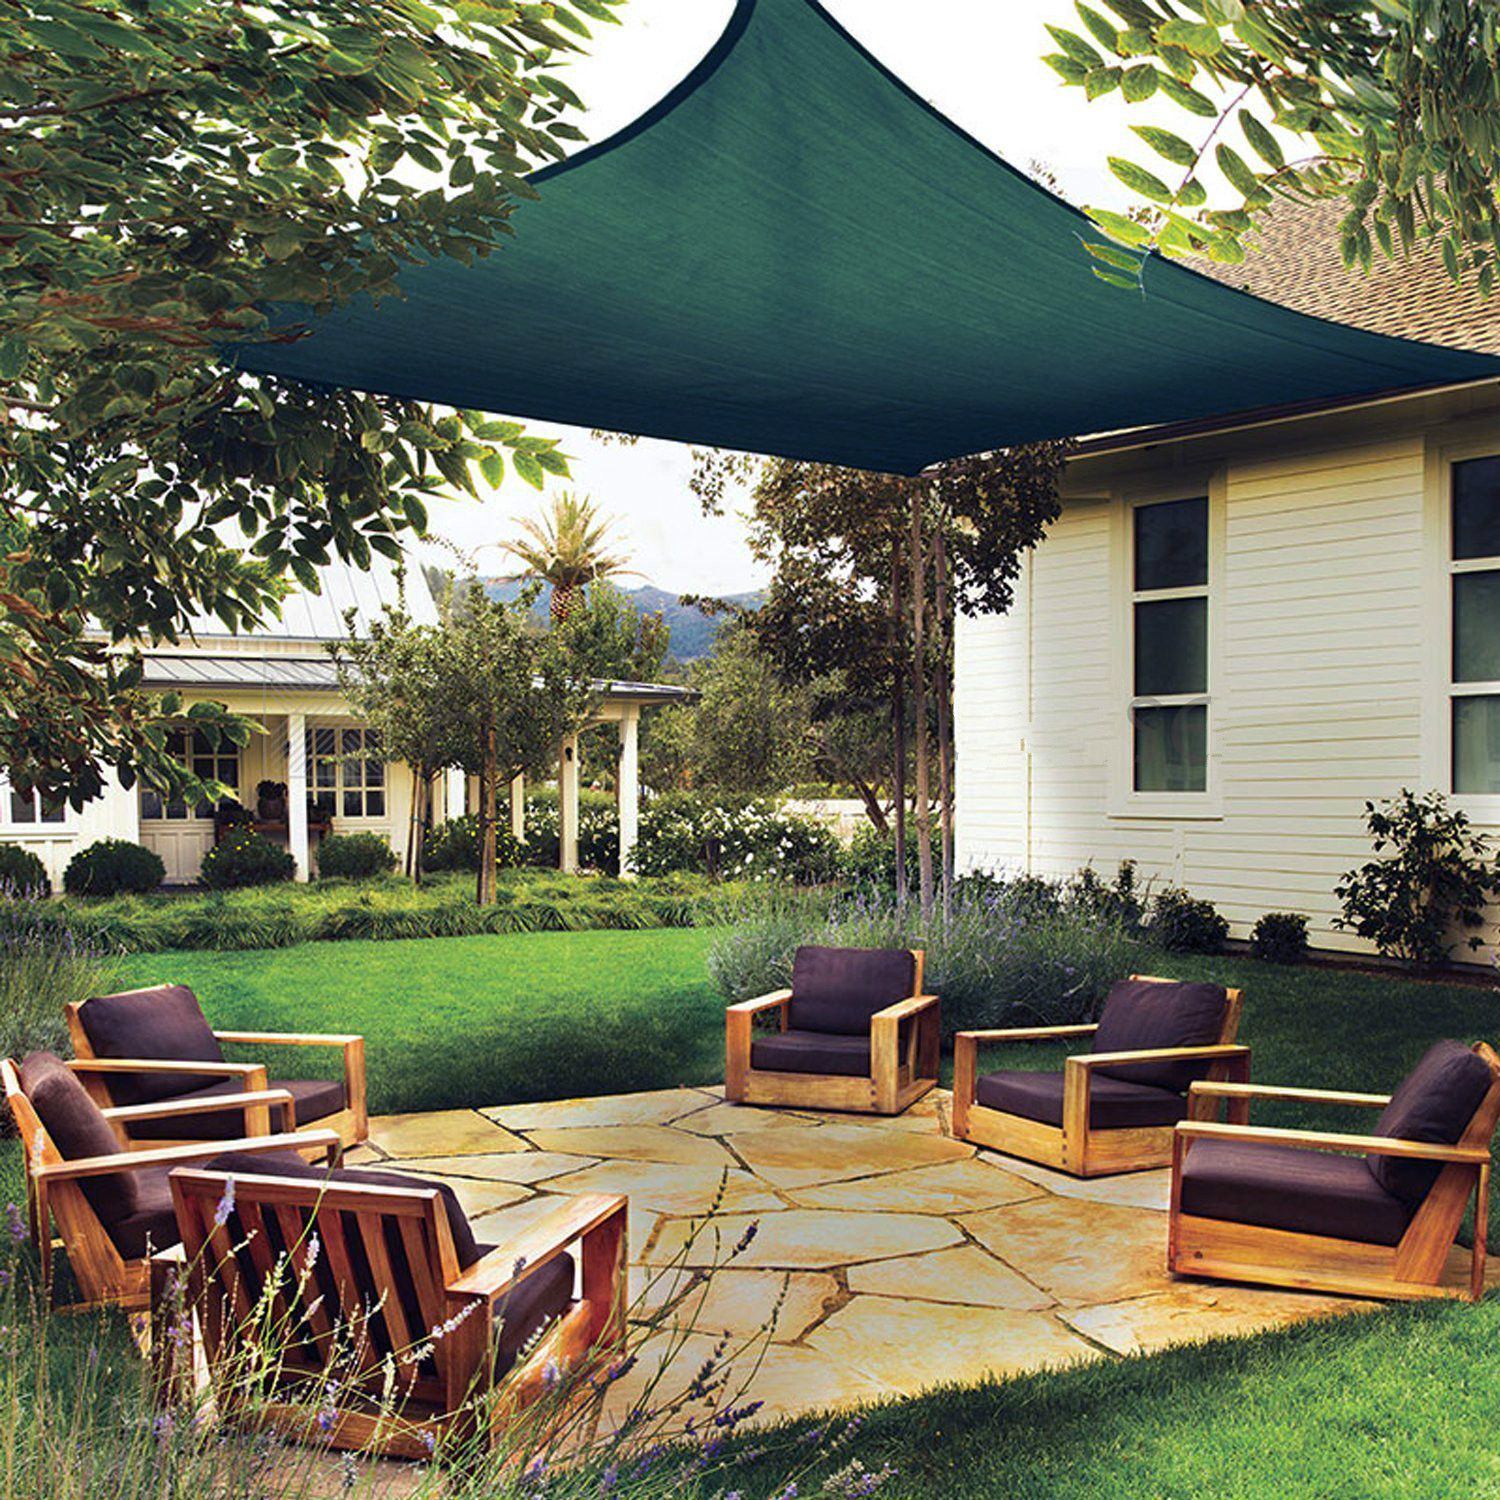 Patio Cover Material Options: Cheap Canopy Patio Cover, Buy Quality Patio Canopy Covers